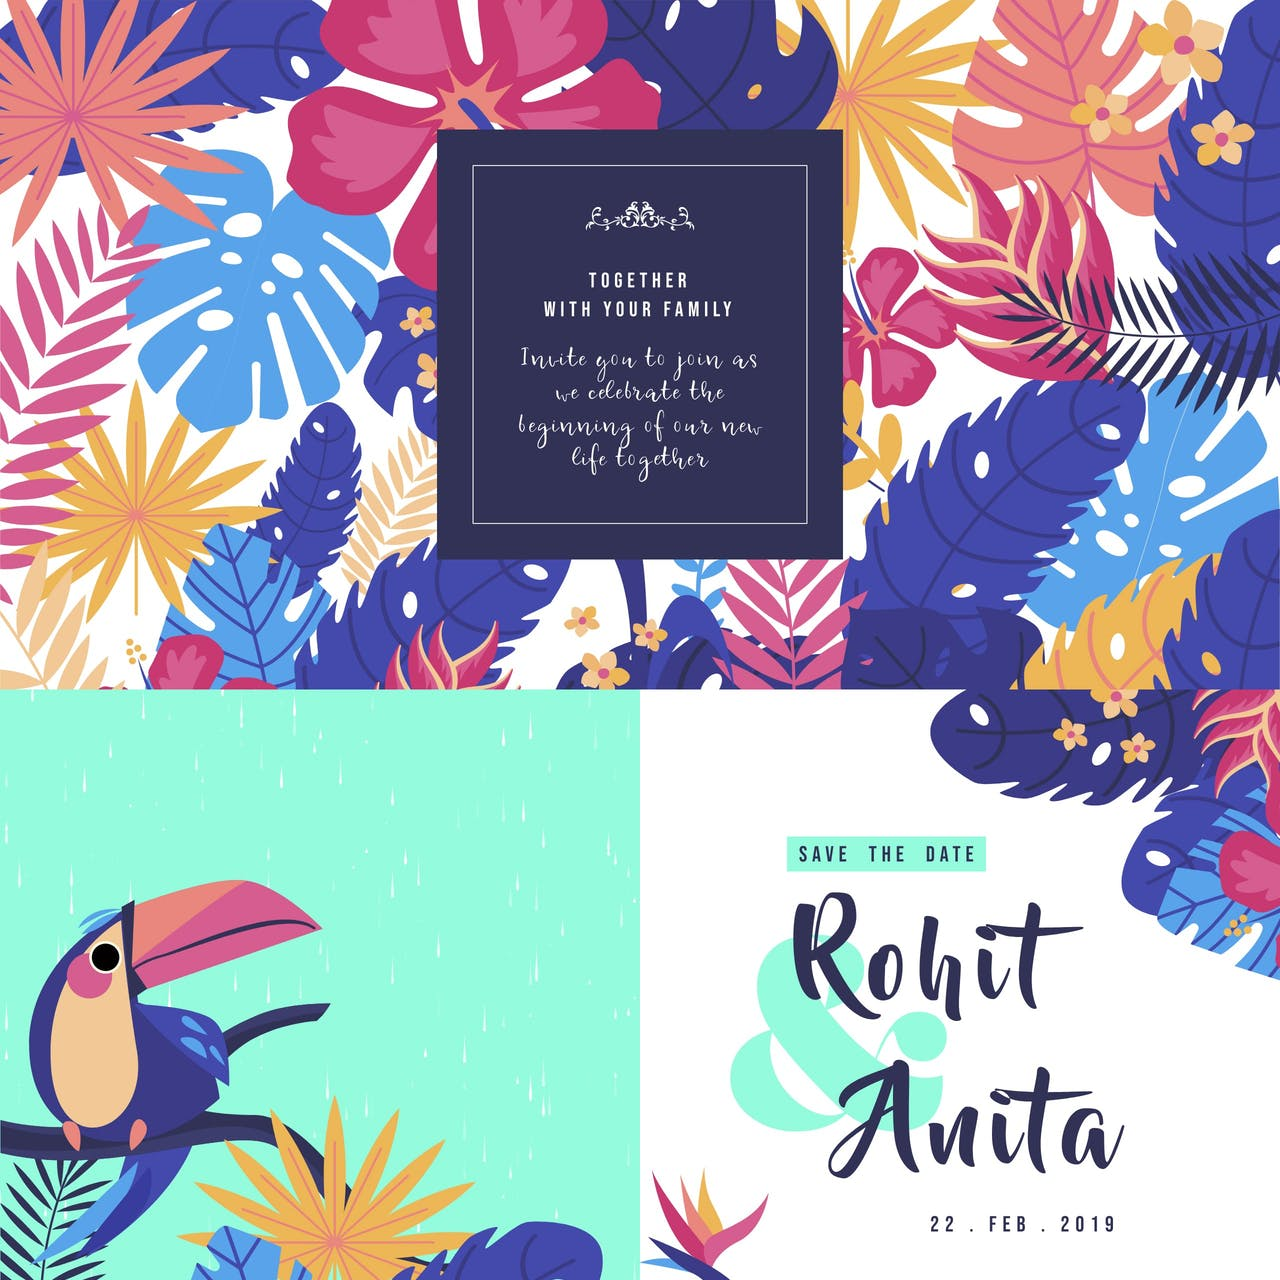 Rohit & Anita – Save The Date Website Screenshot